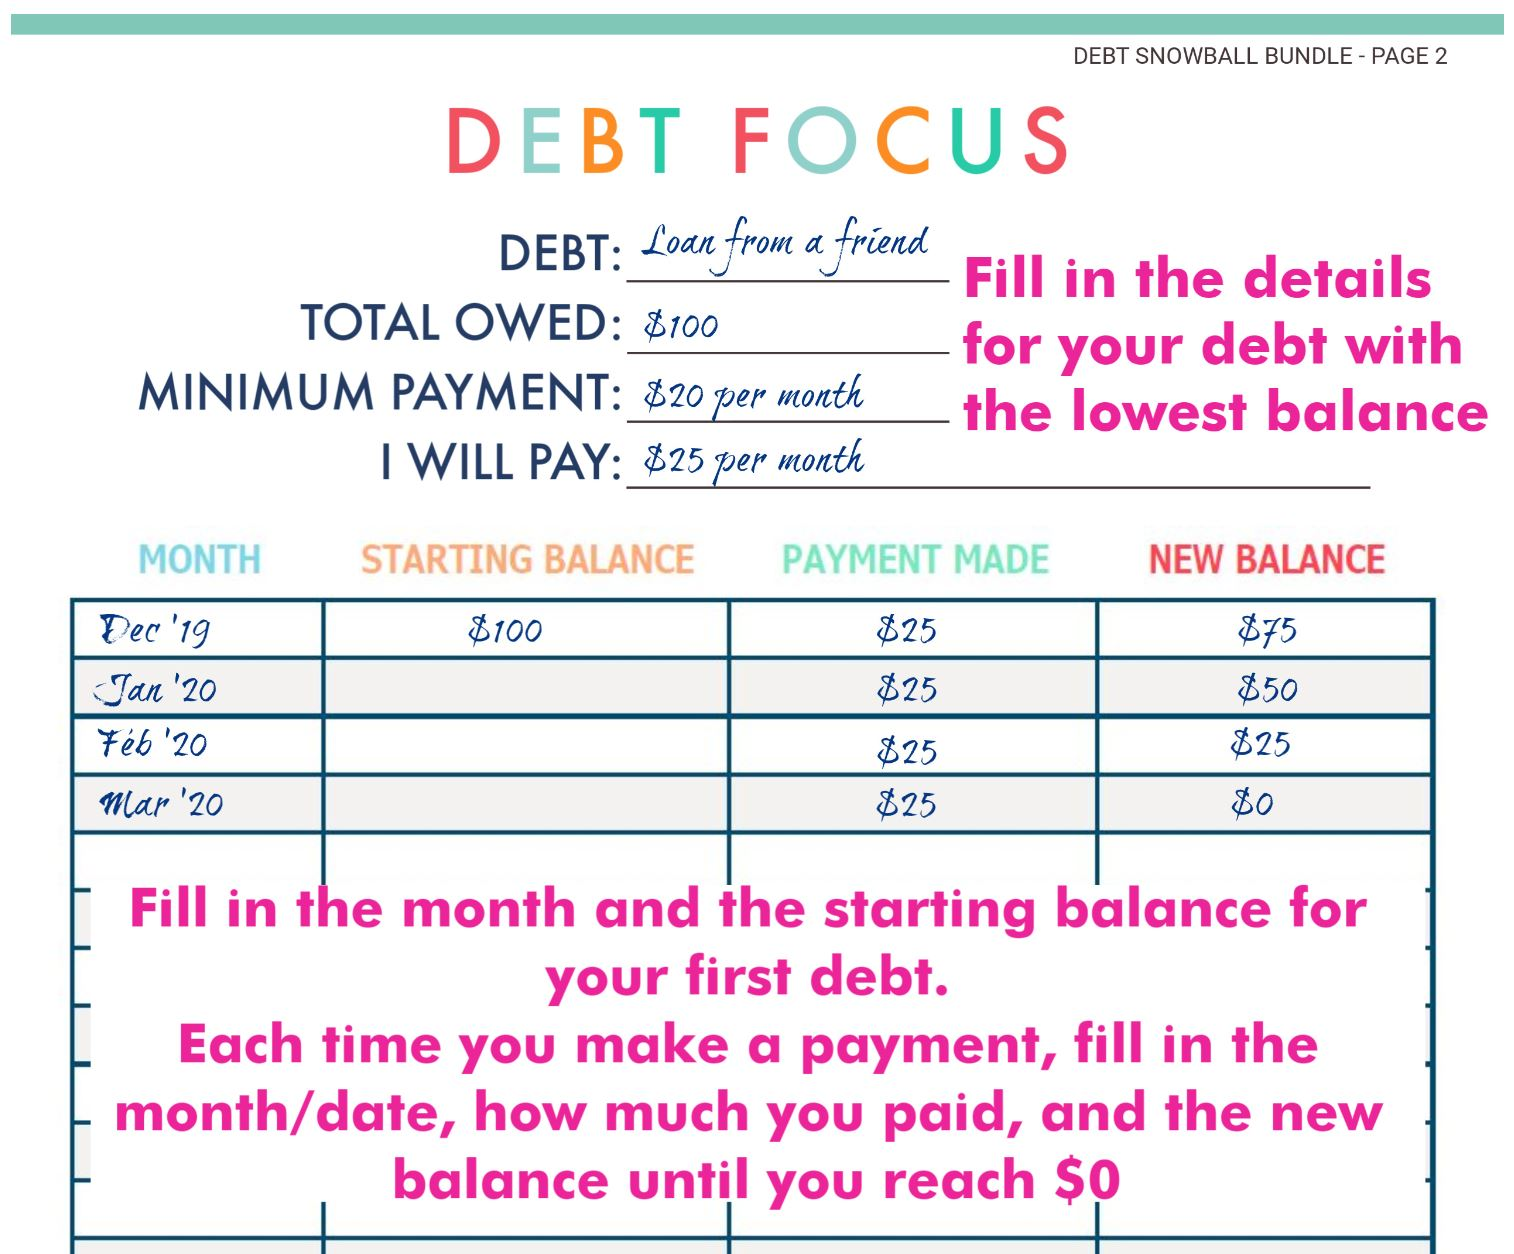 How to focus on lowest debt in debt snowball method